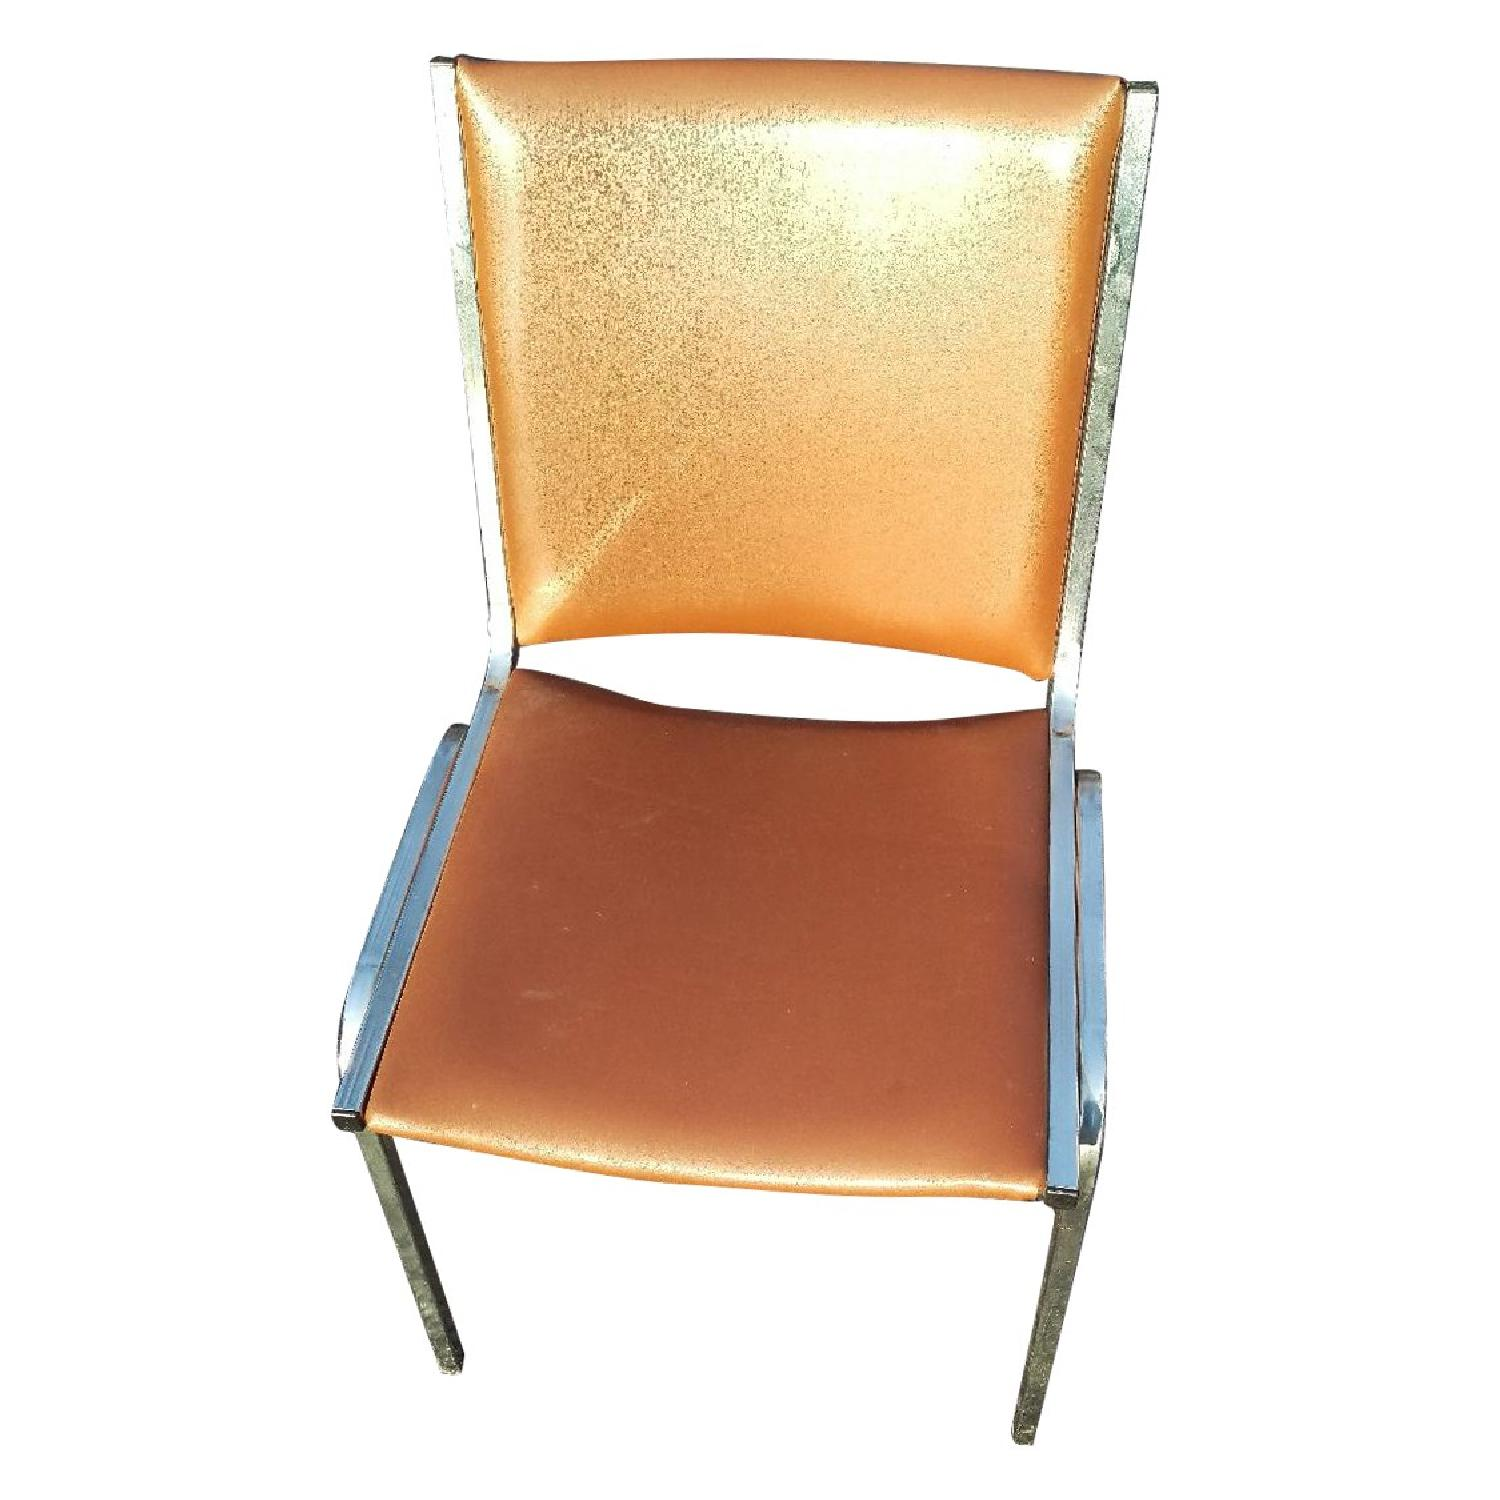 Vintage Tan Leather & Chrome Office Chair